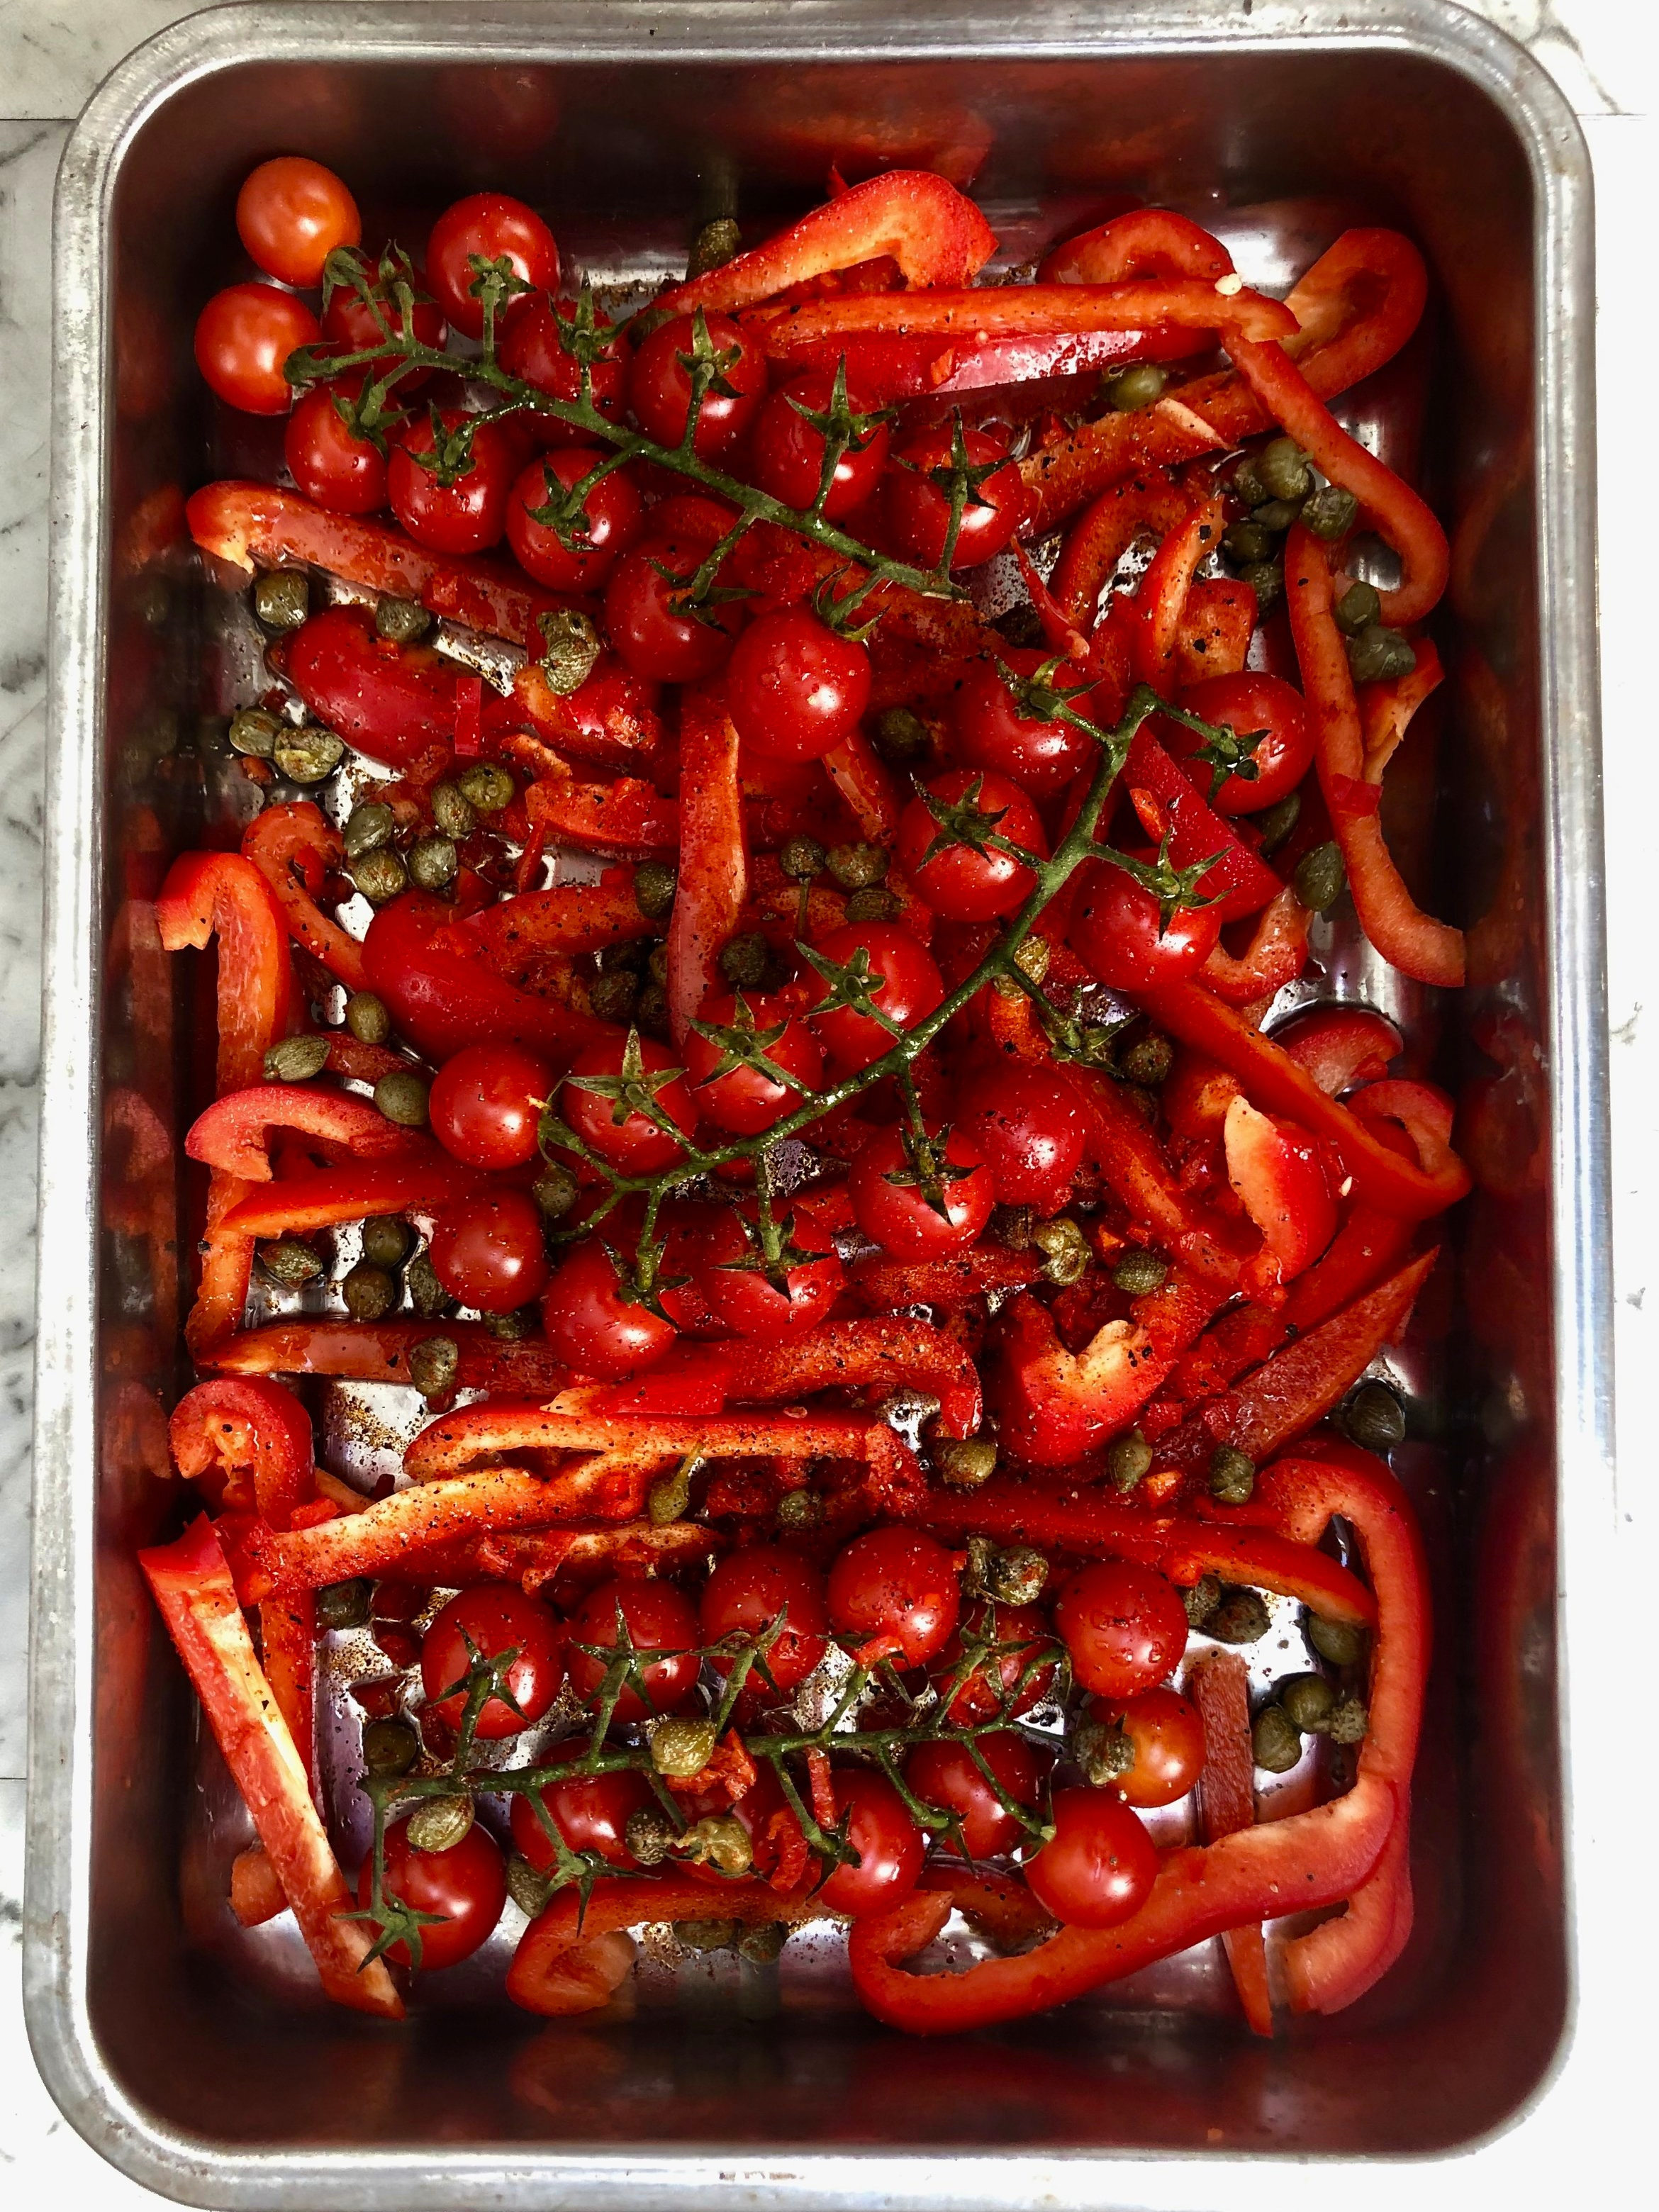 Tomatoes, pepper slices, capers, chopped chilli and paprika